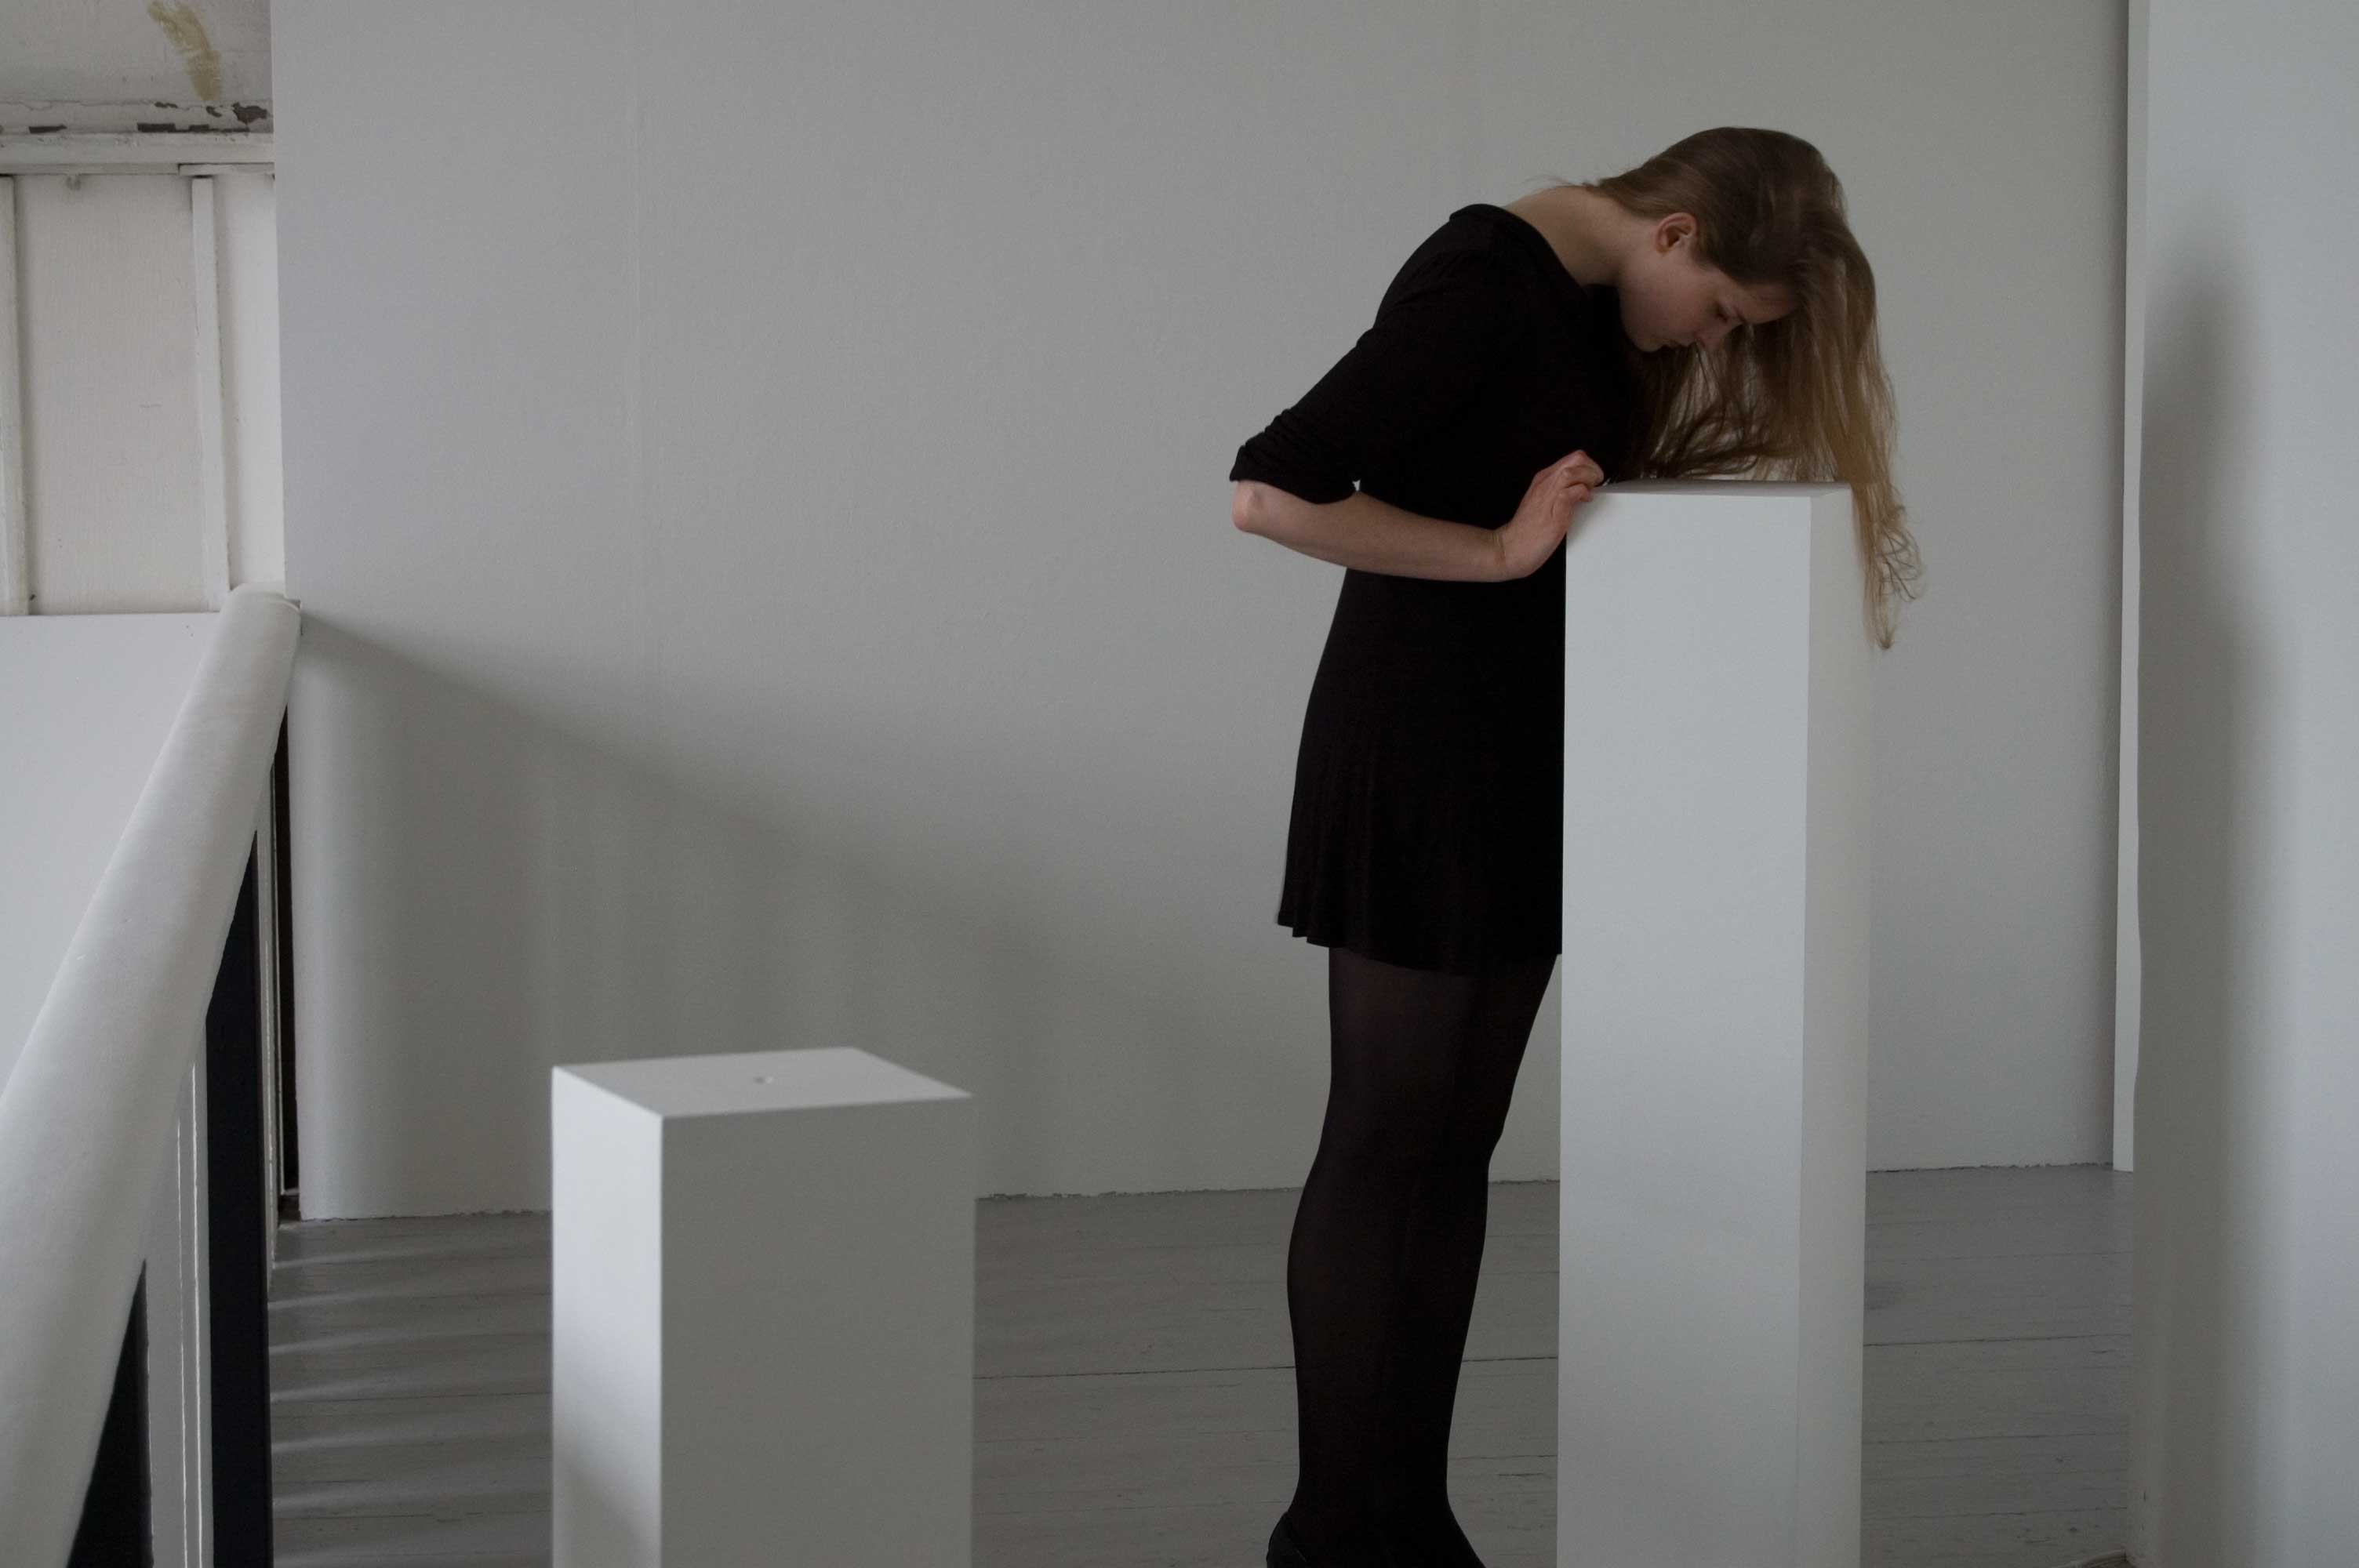 A gallery space with white walls. There are two plinths, a woman leans over one of the plinths to look into a hole in the top of it.